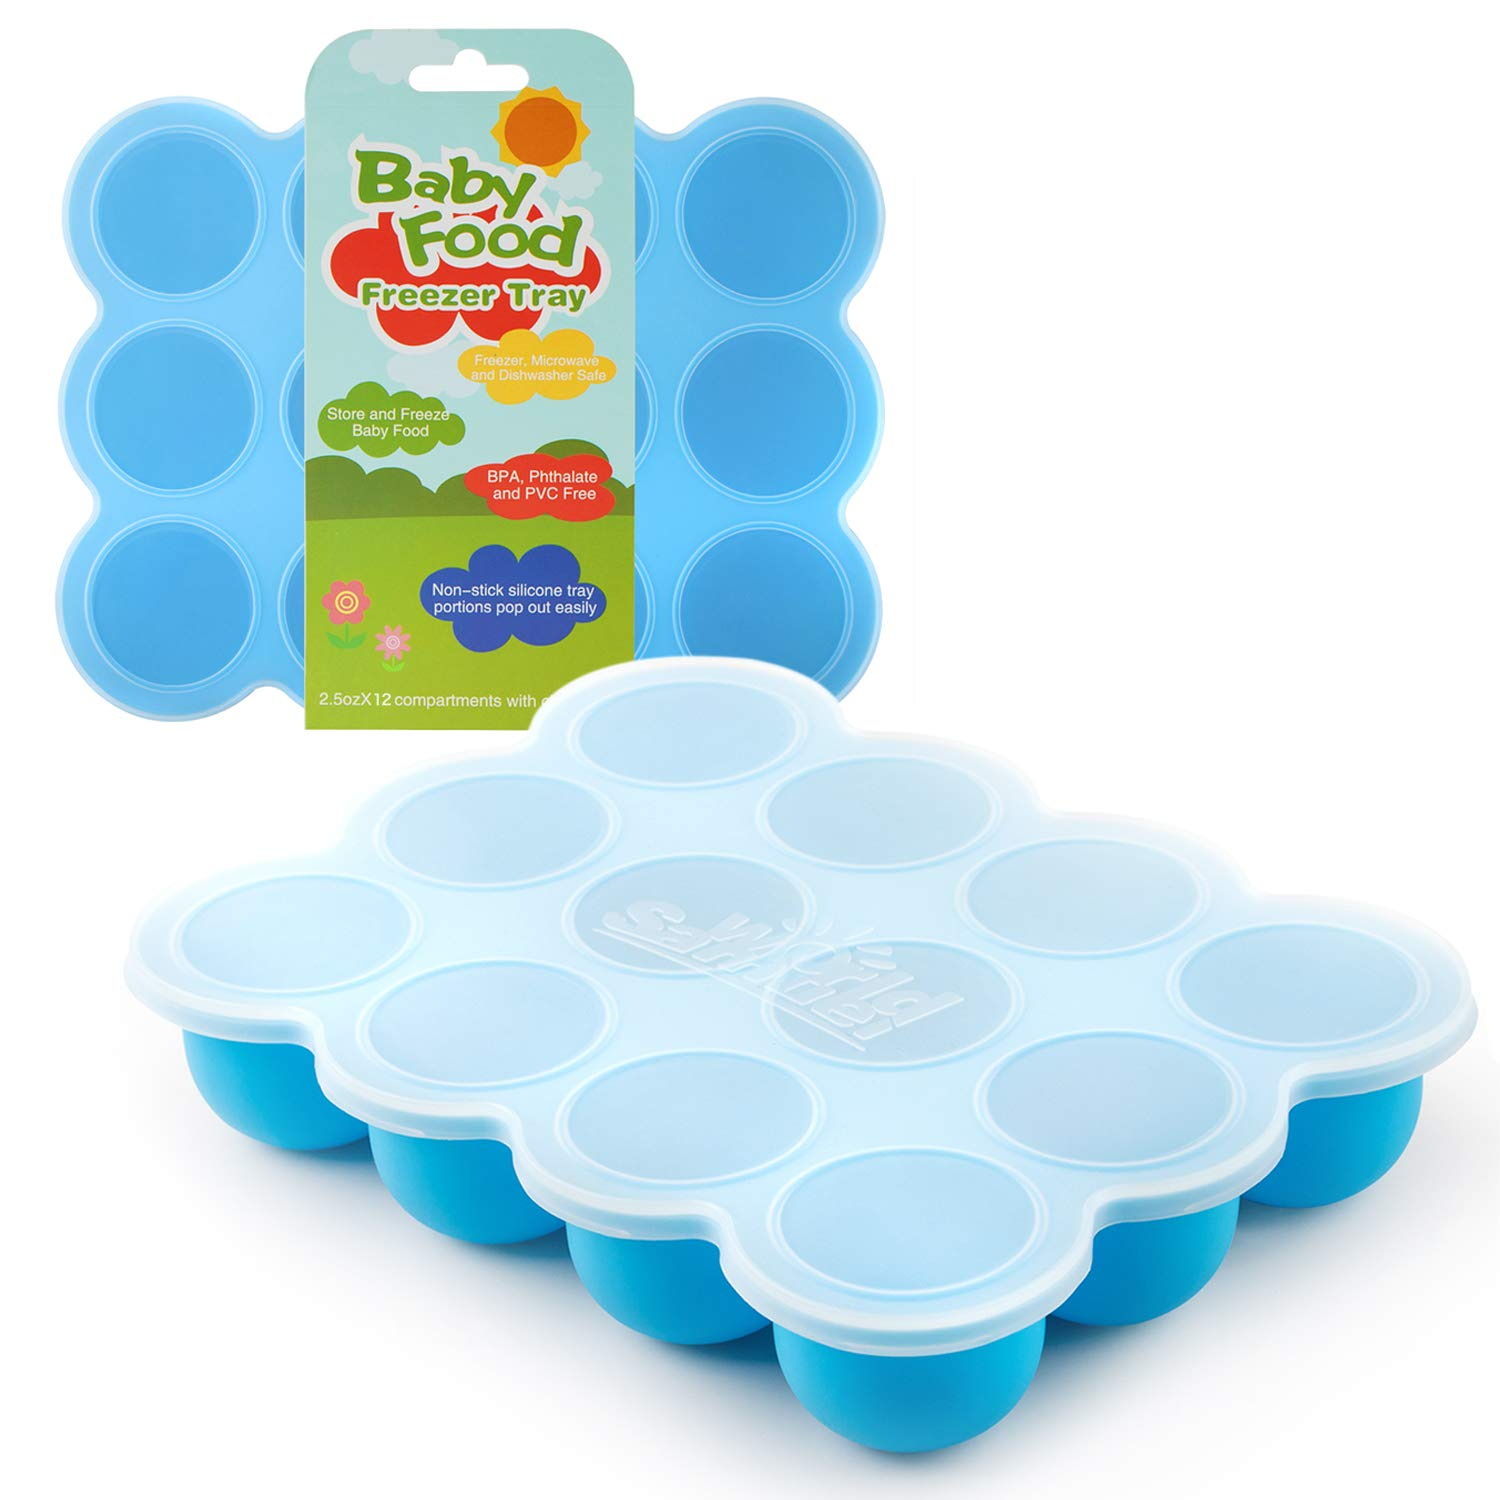 Samuelworld Baby Food Storage Container, 12 Portions Freezer Tray with Lid, 12x2.5oz BPA Free, FDA Approved, Silicone, Perfect for Homemade Baby Food, Vegetable & Fruit Purees and Breast Milk by Samuelworld